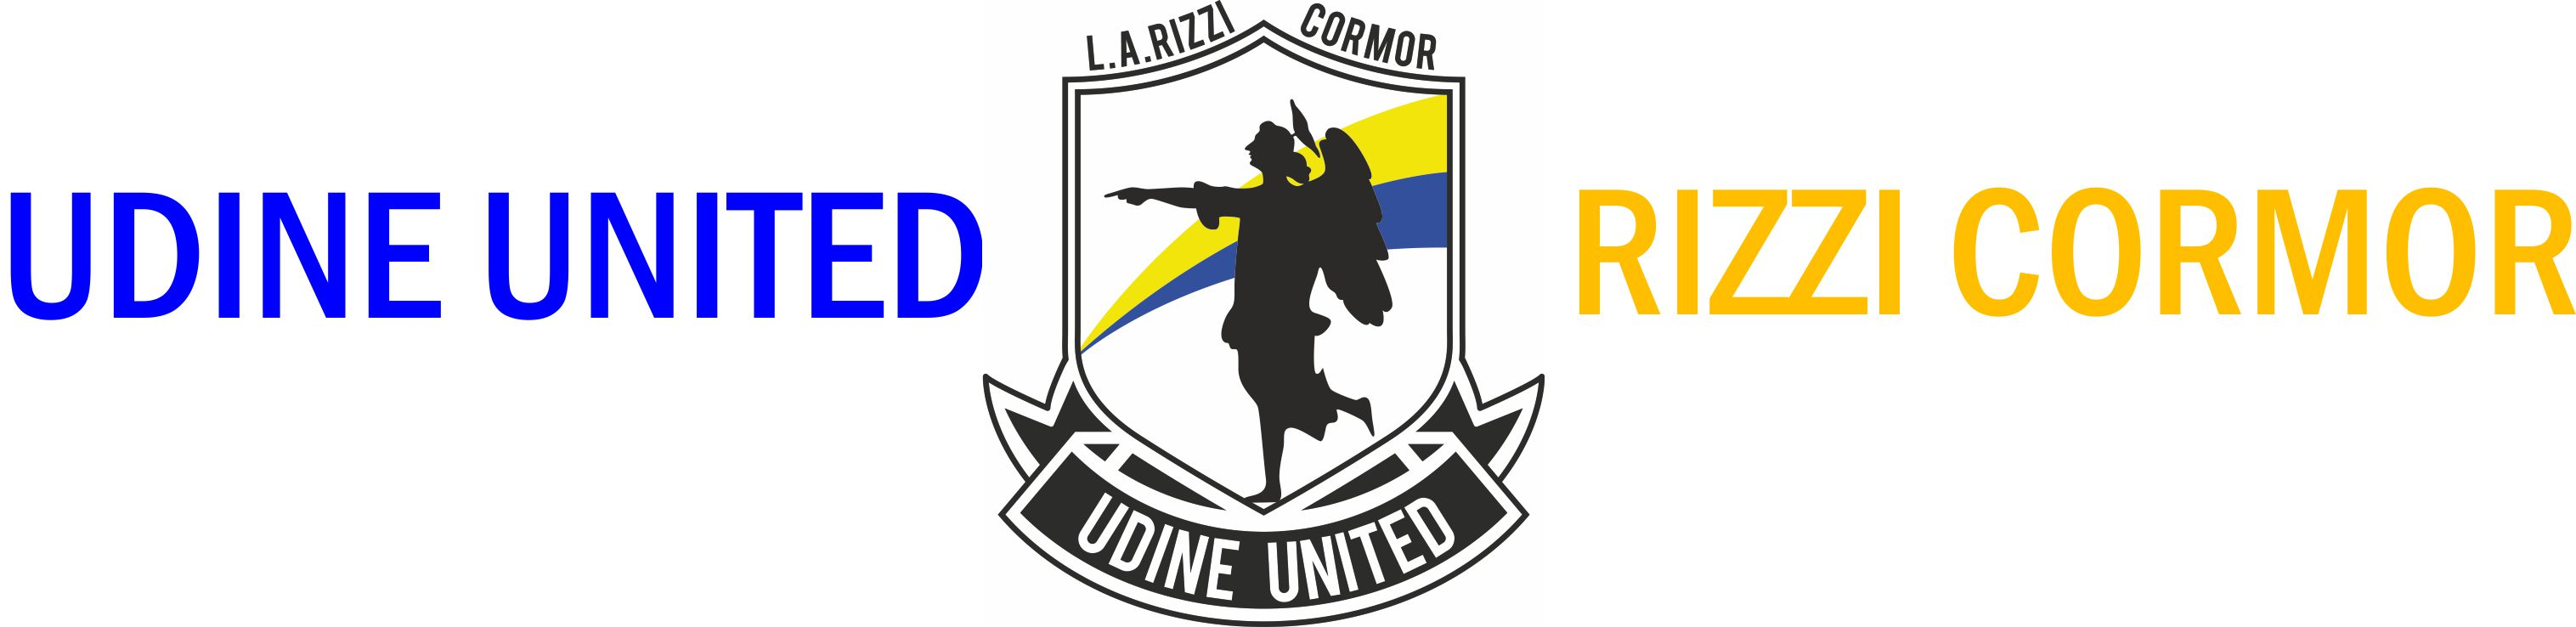 UDINE UNITED RIZZI CORMOR S.S.D. a r.l.